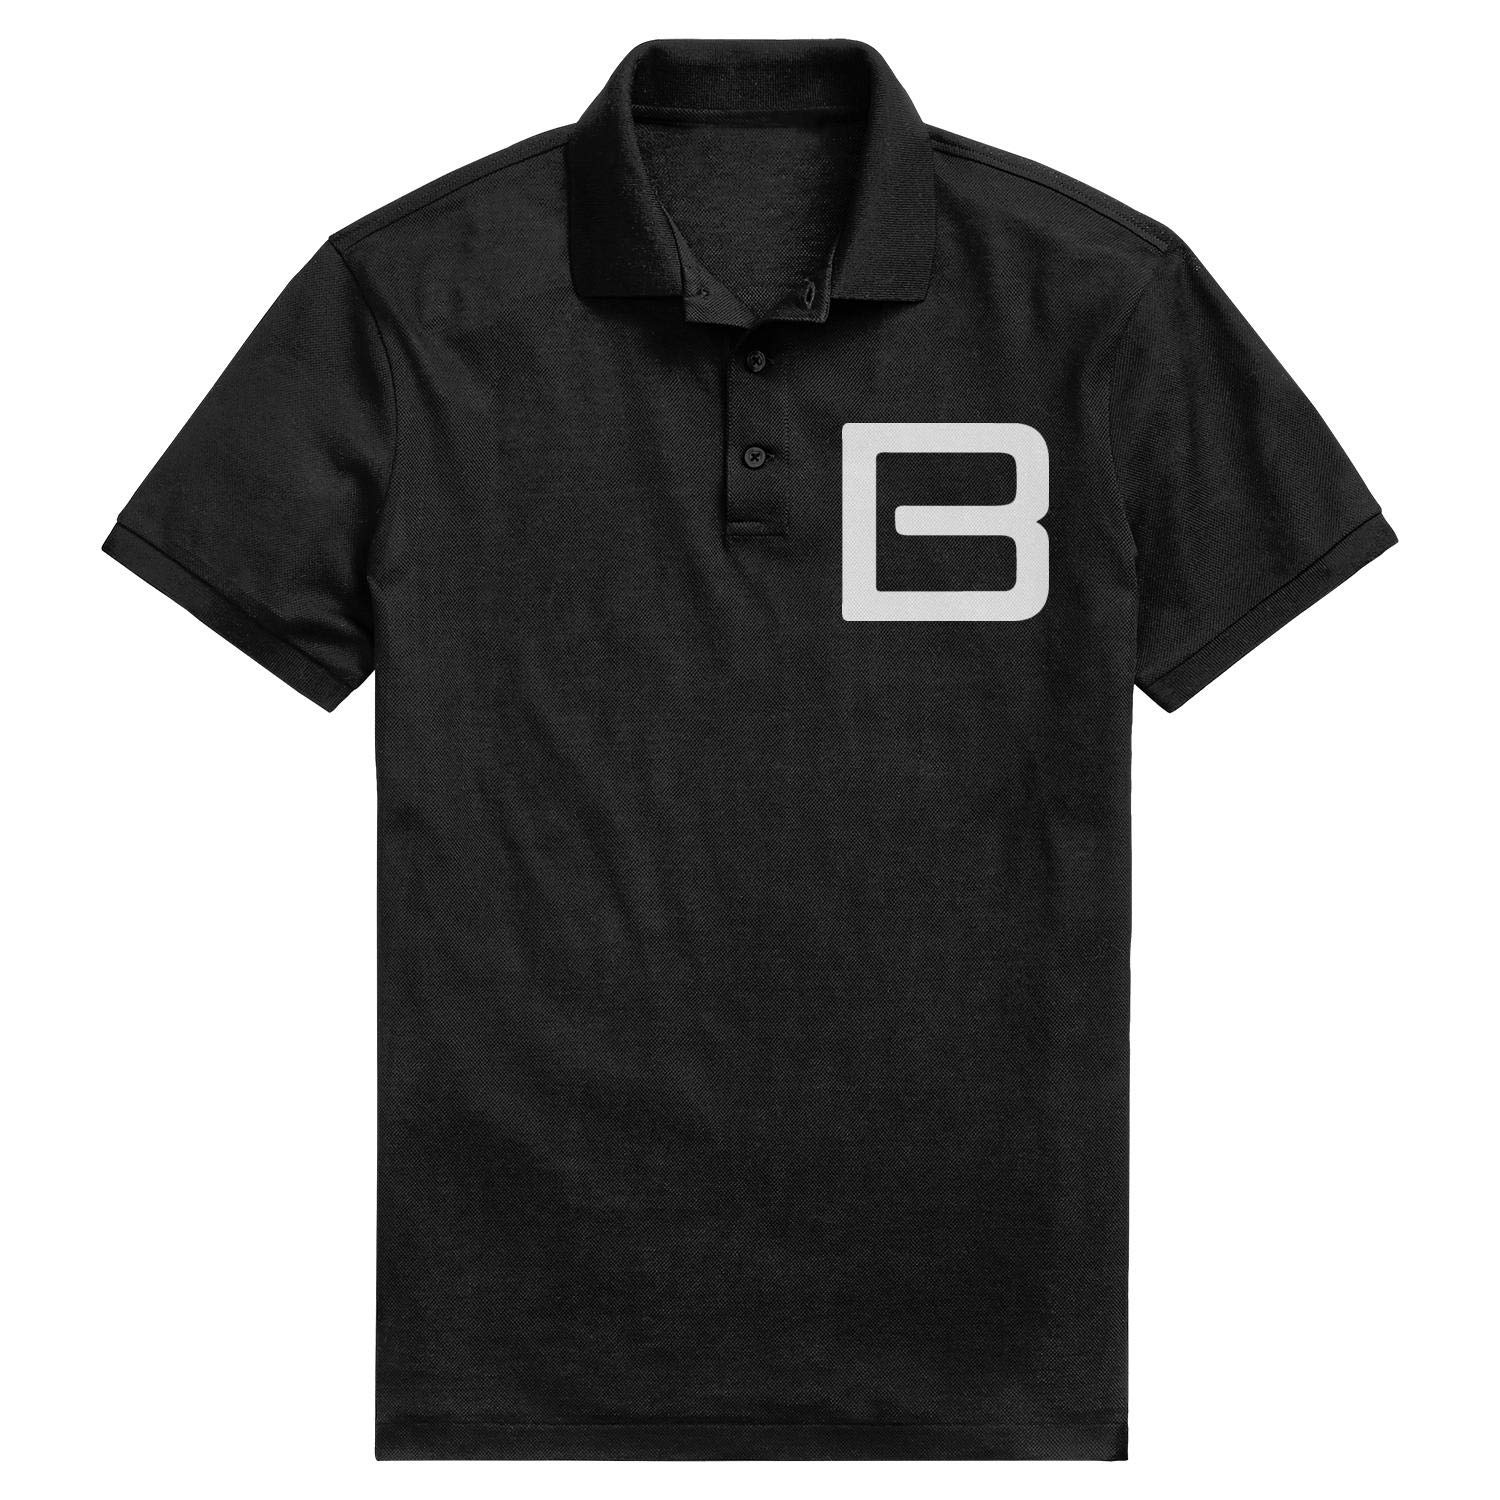 Mens Classic Pique Polo T Shirt Fit Bayliner Logo White Adjustable Athletic Short-Sleeves